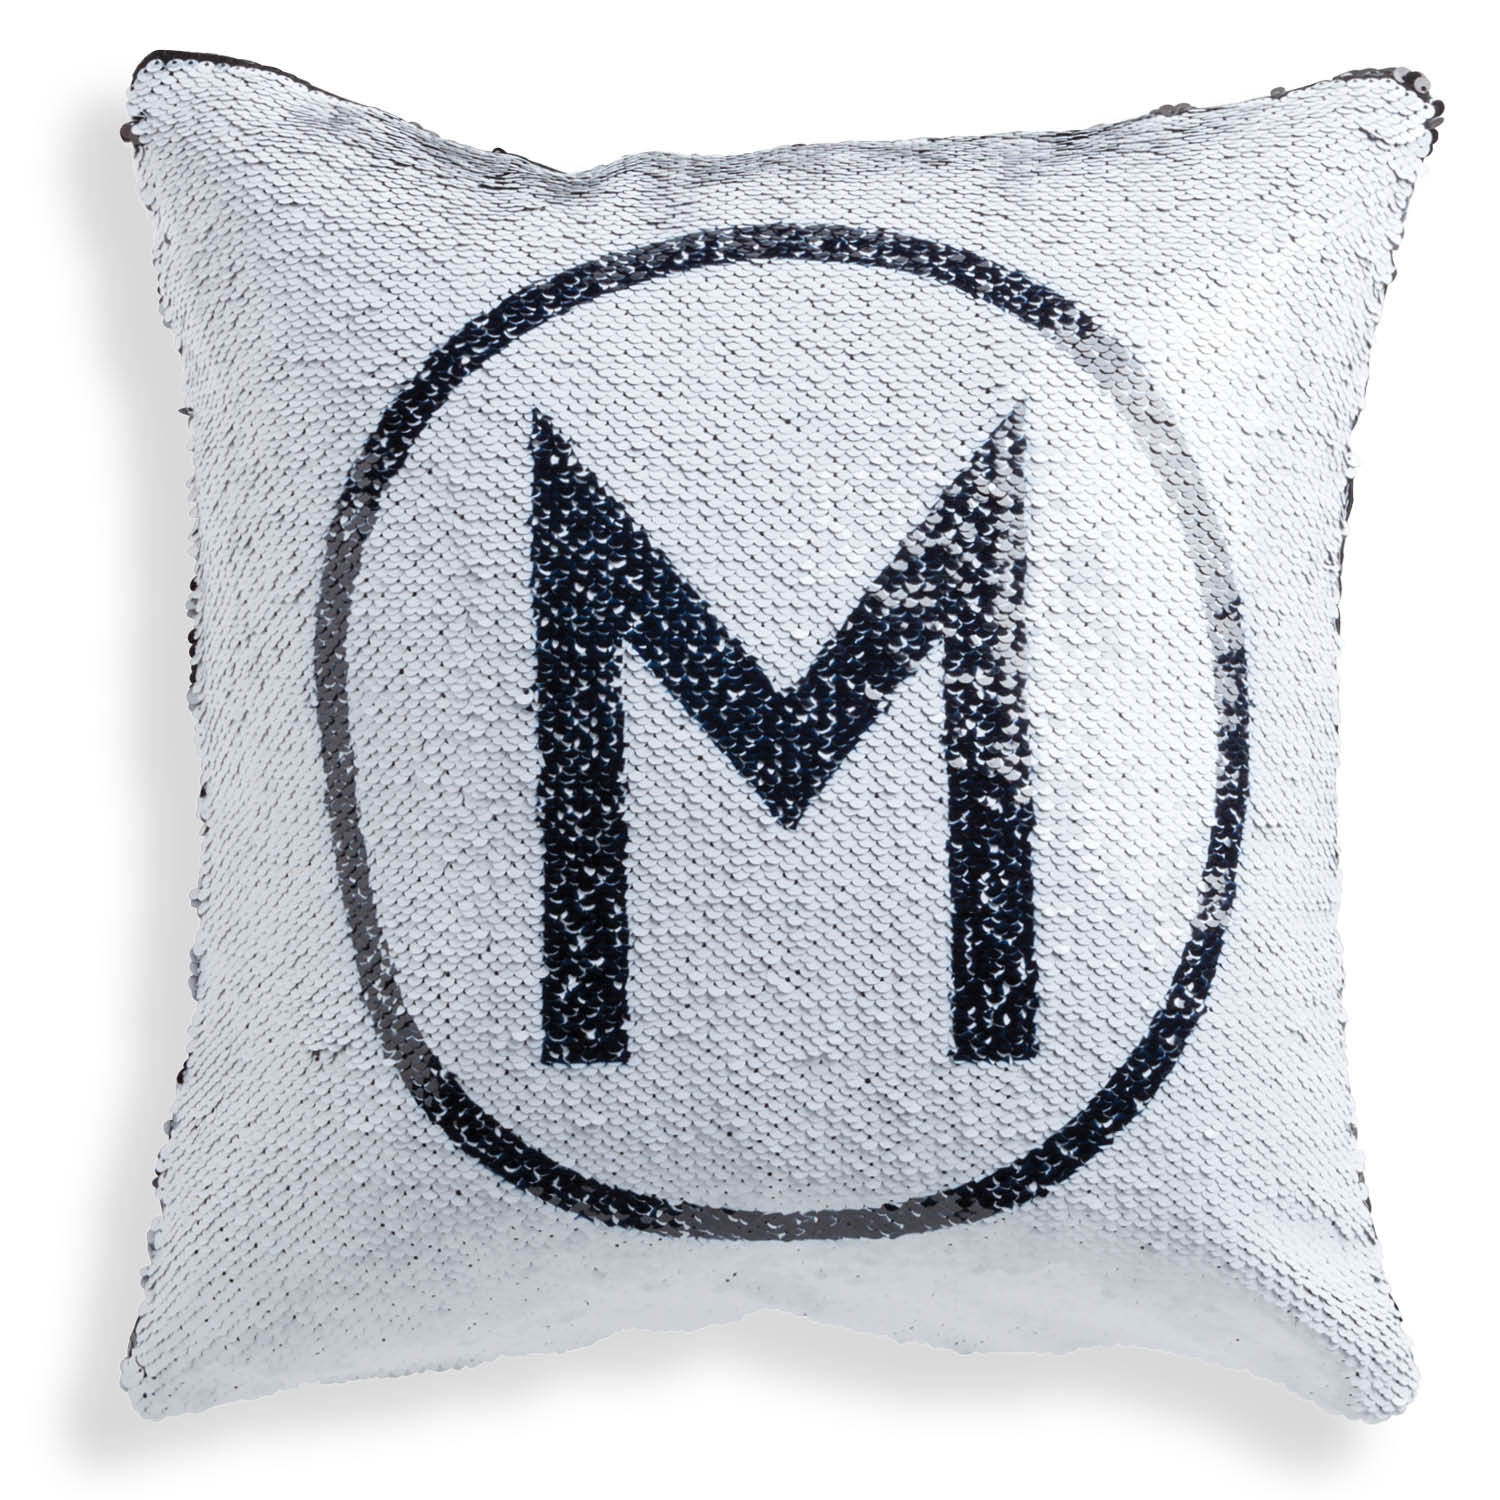 Personalized Black Sequin Pillow - Circle Initial - 16x16